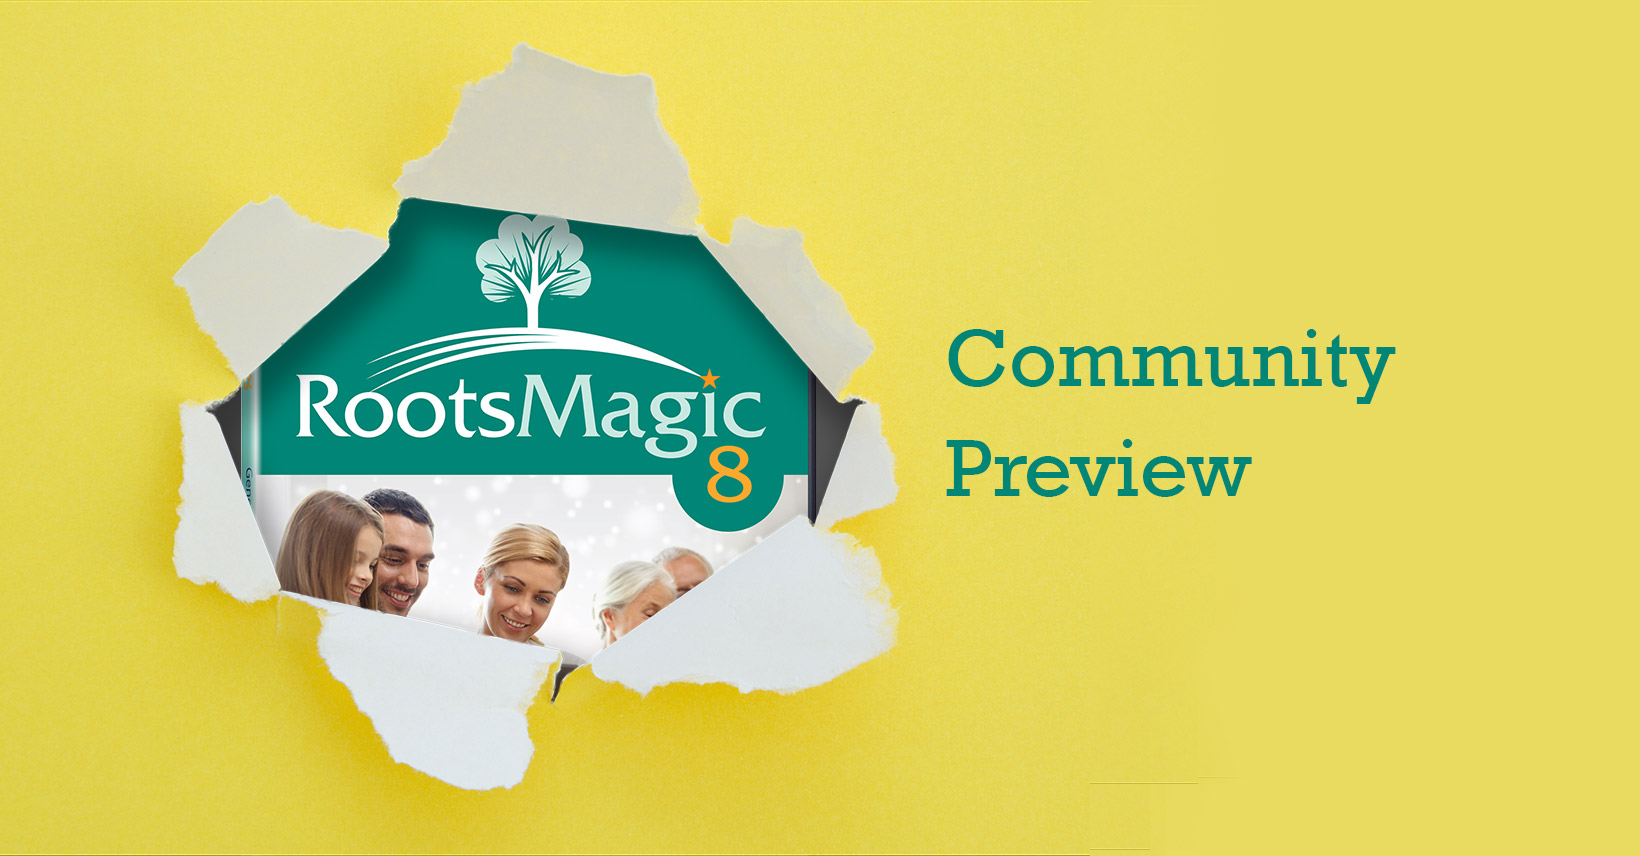 RM8-Community-Preview-Facebook-Group-Header